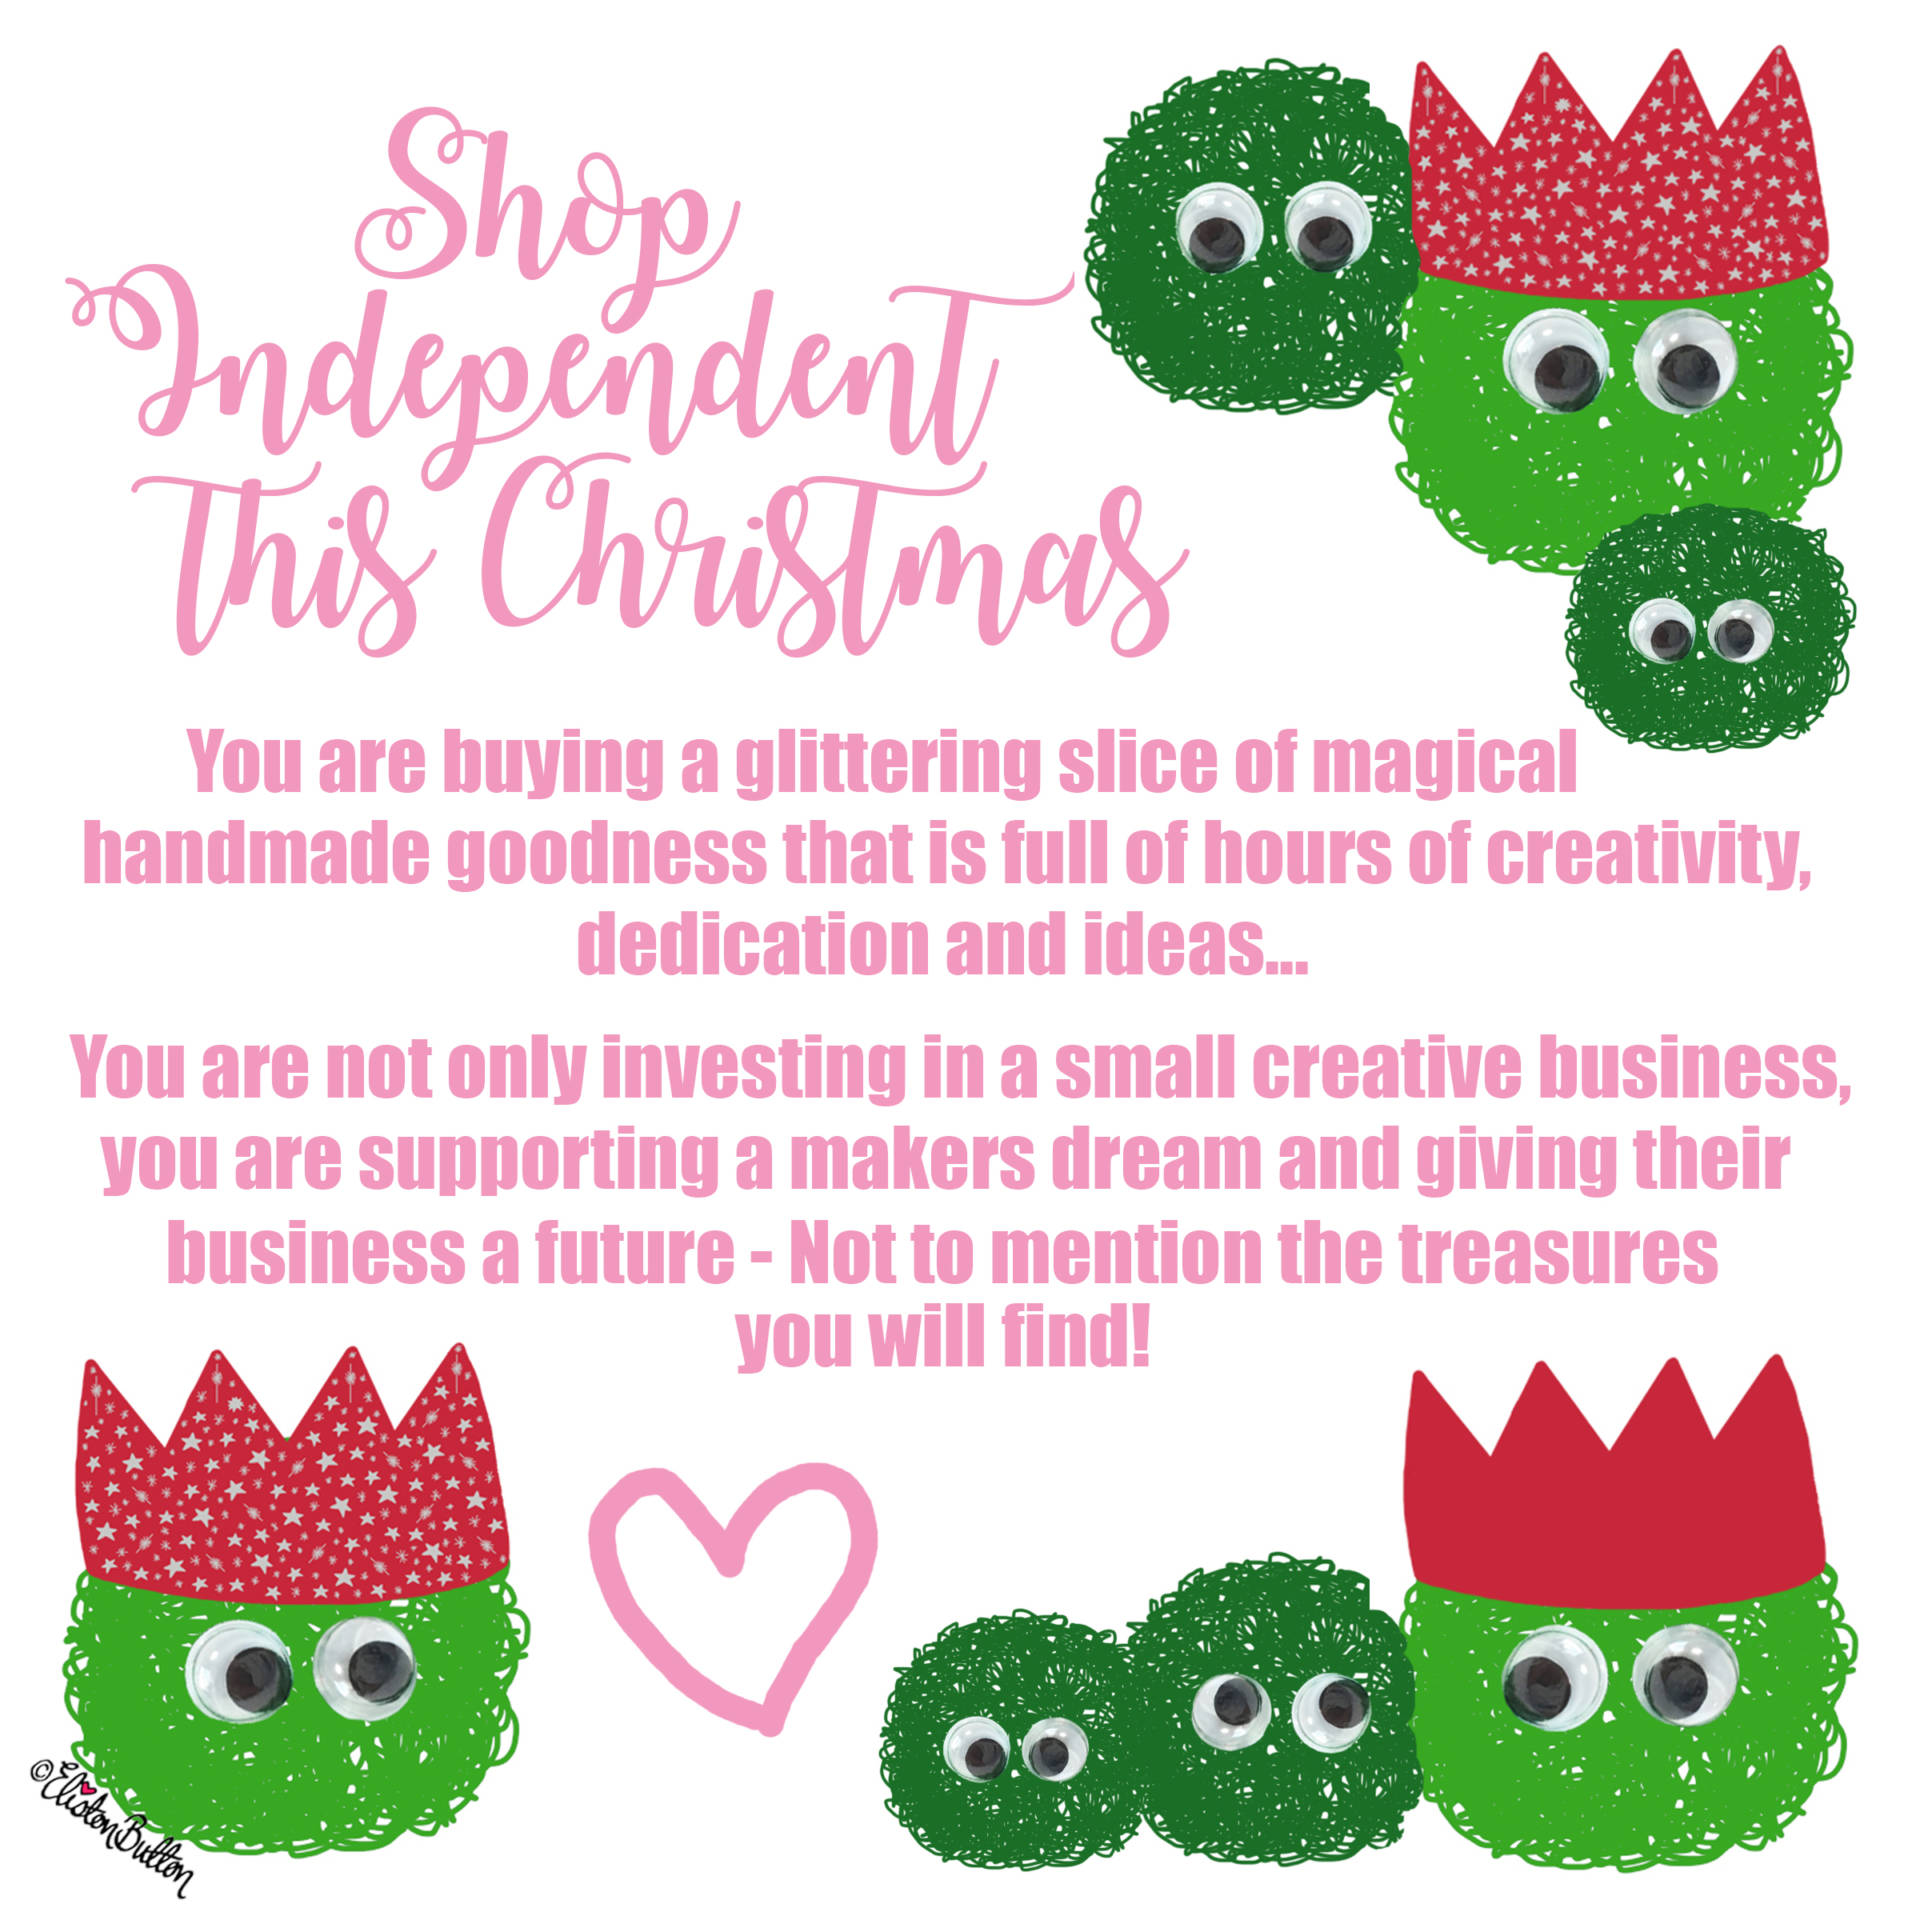 Shop Independent This Christmas by Eliston Button - Last Christmas Postage Dates! at www.elistonbutton.com - Eliston Button - That Crafty Kid – Art, Design, Craft & Adventure.